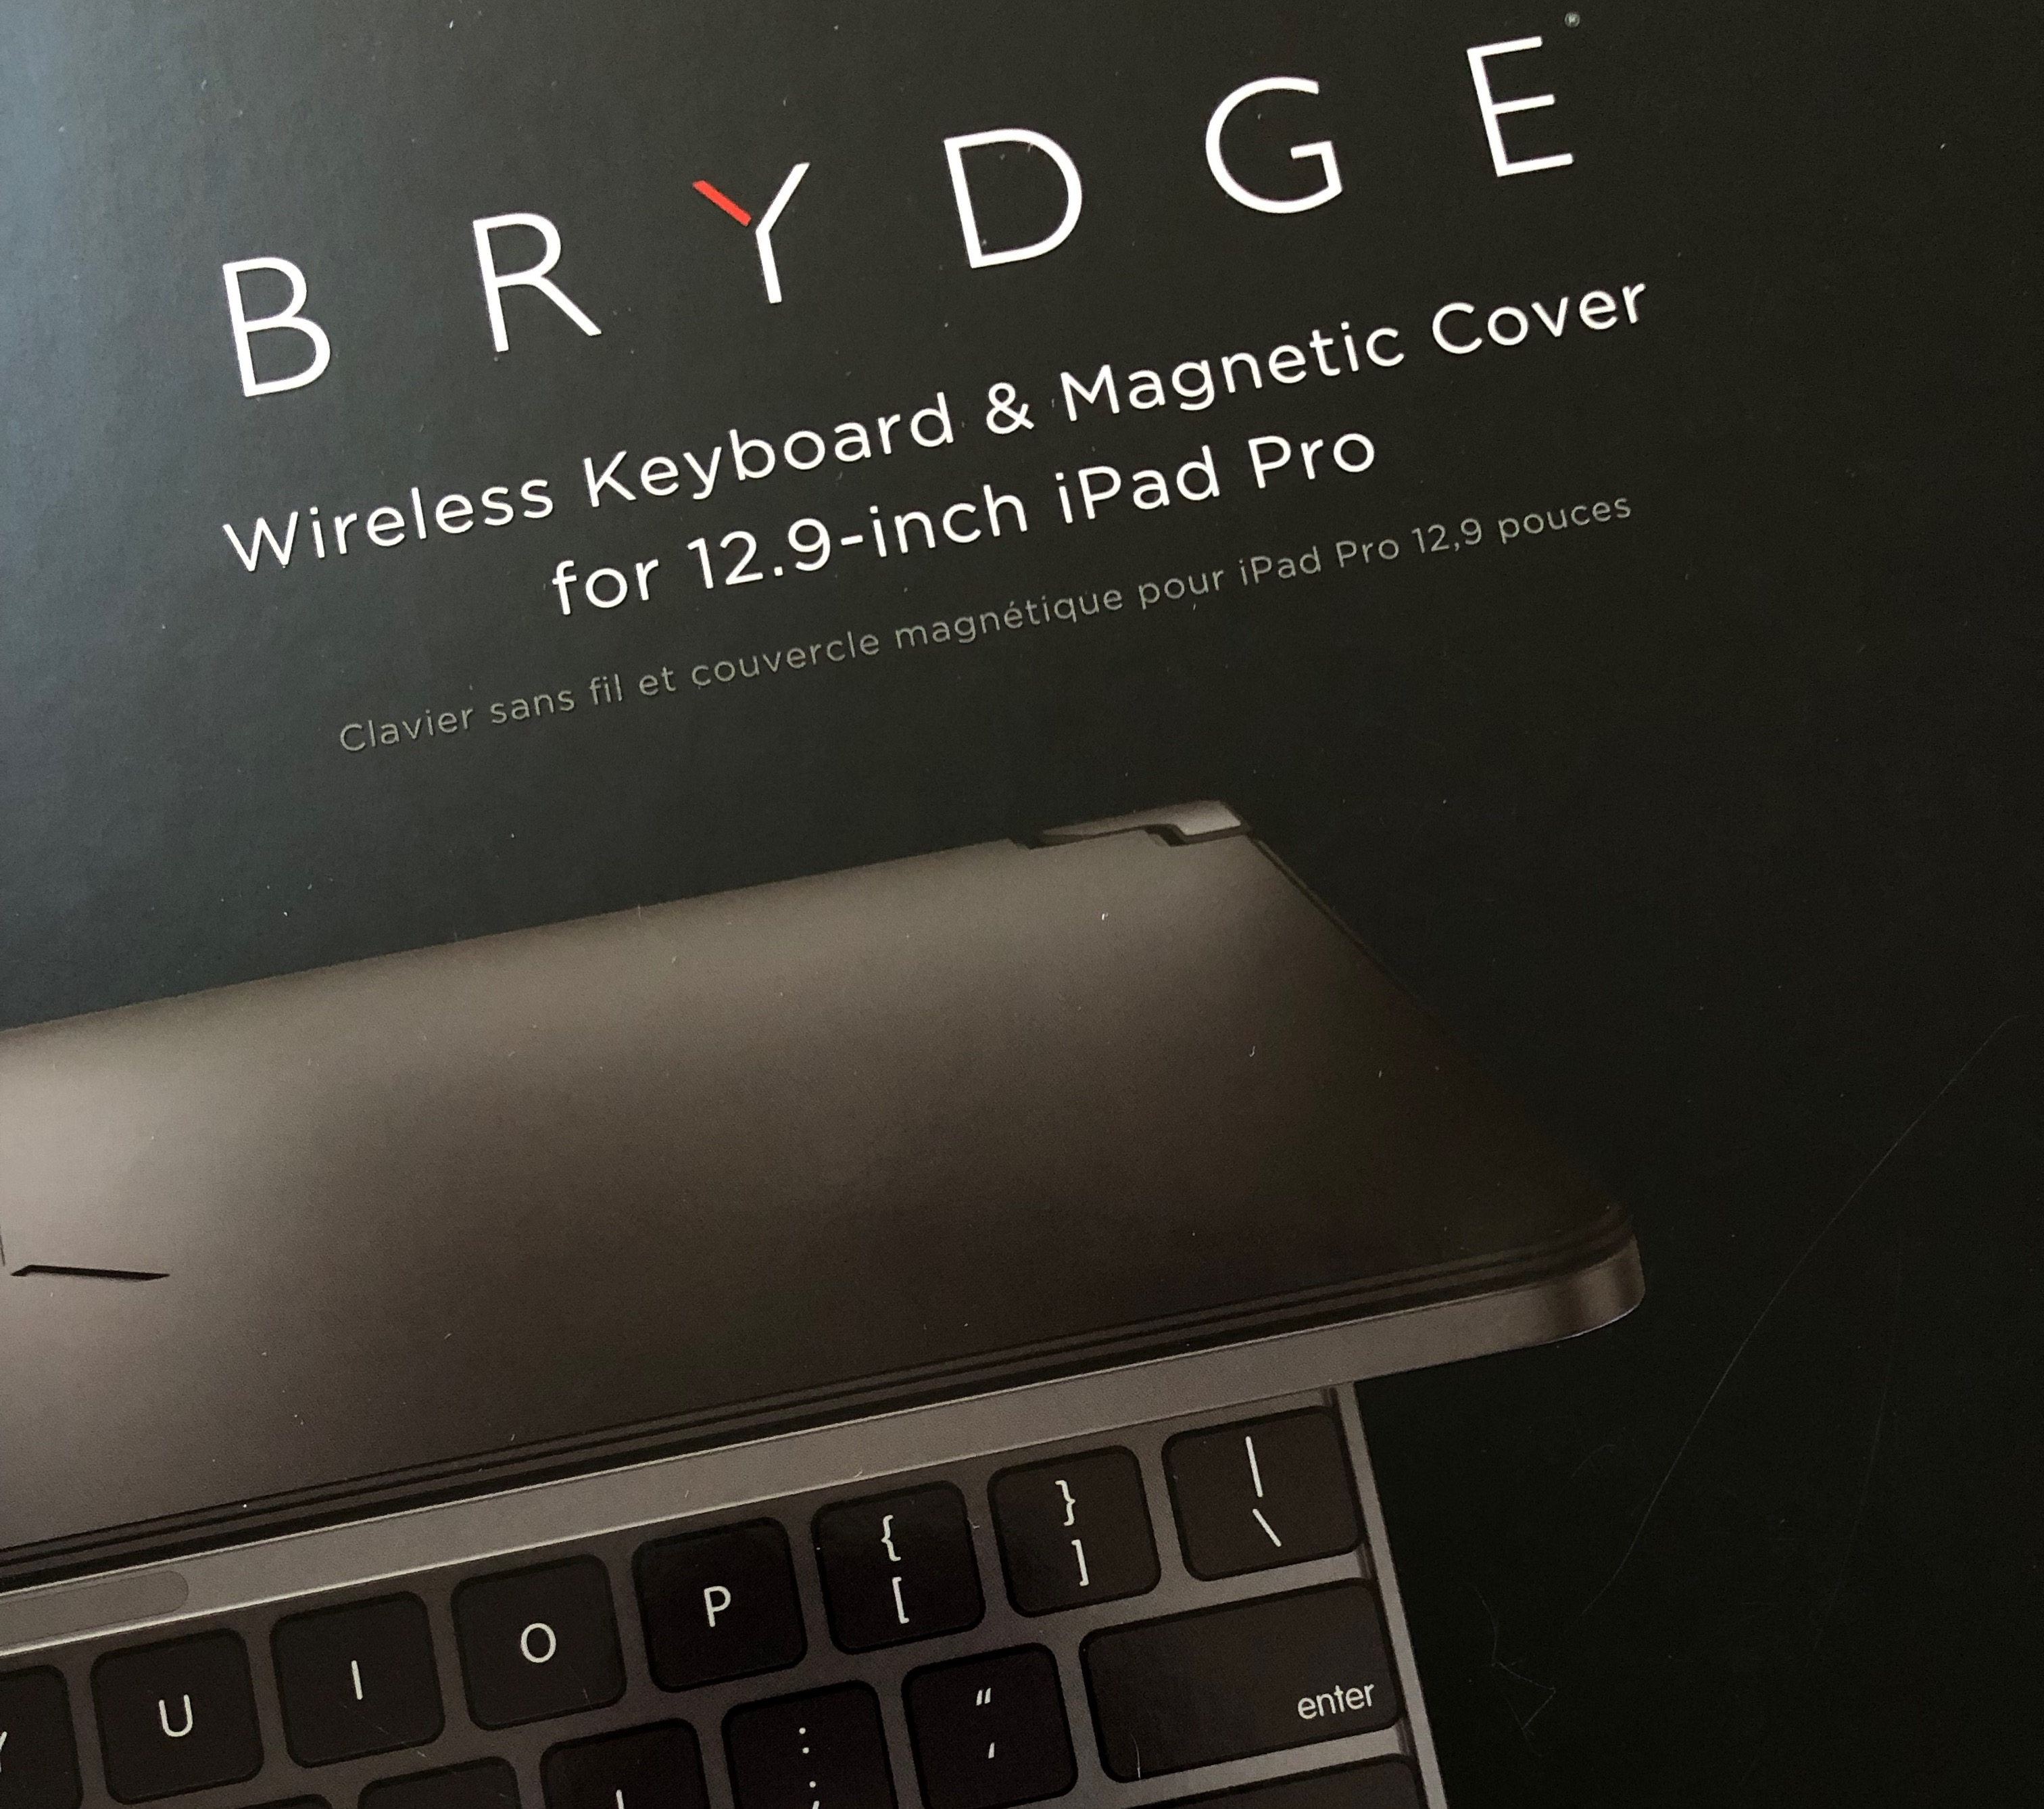 Brydge Keyboard Box